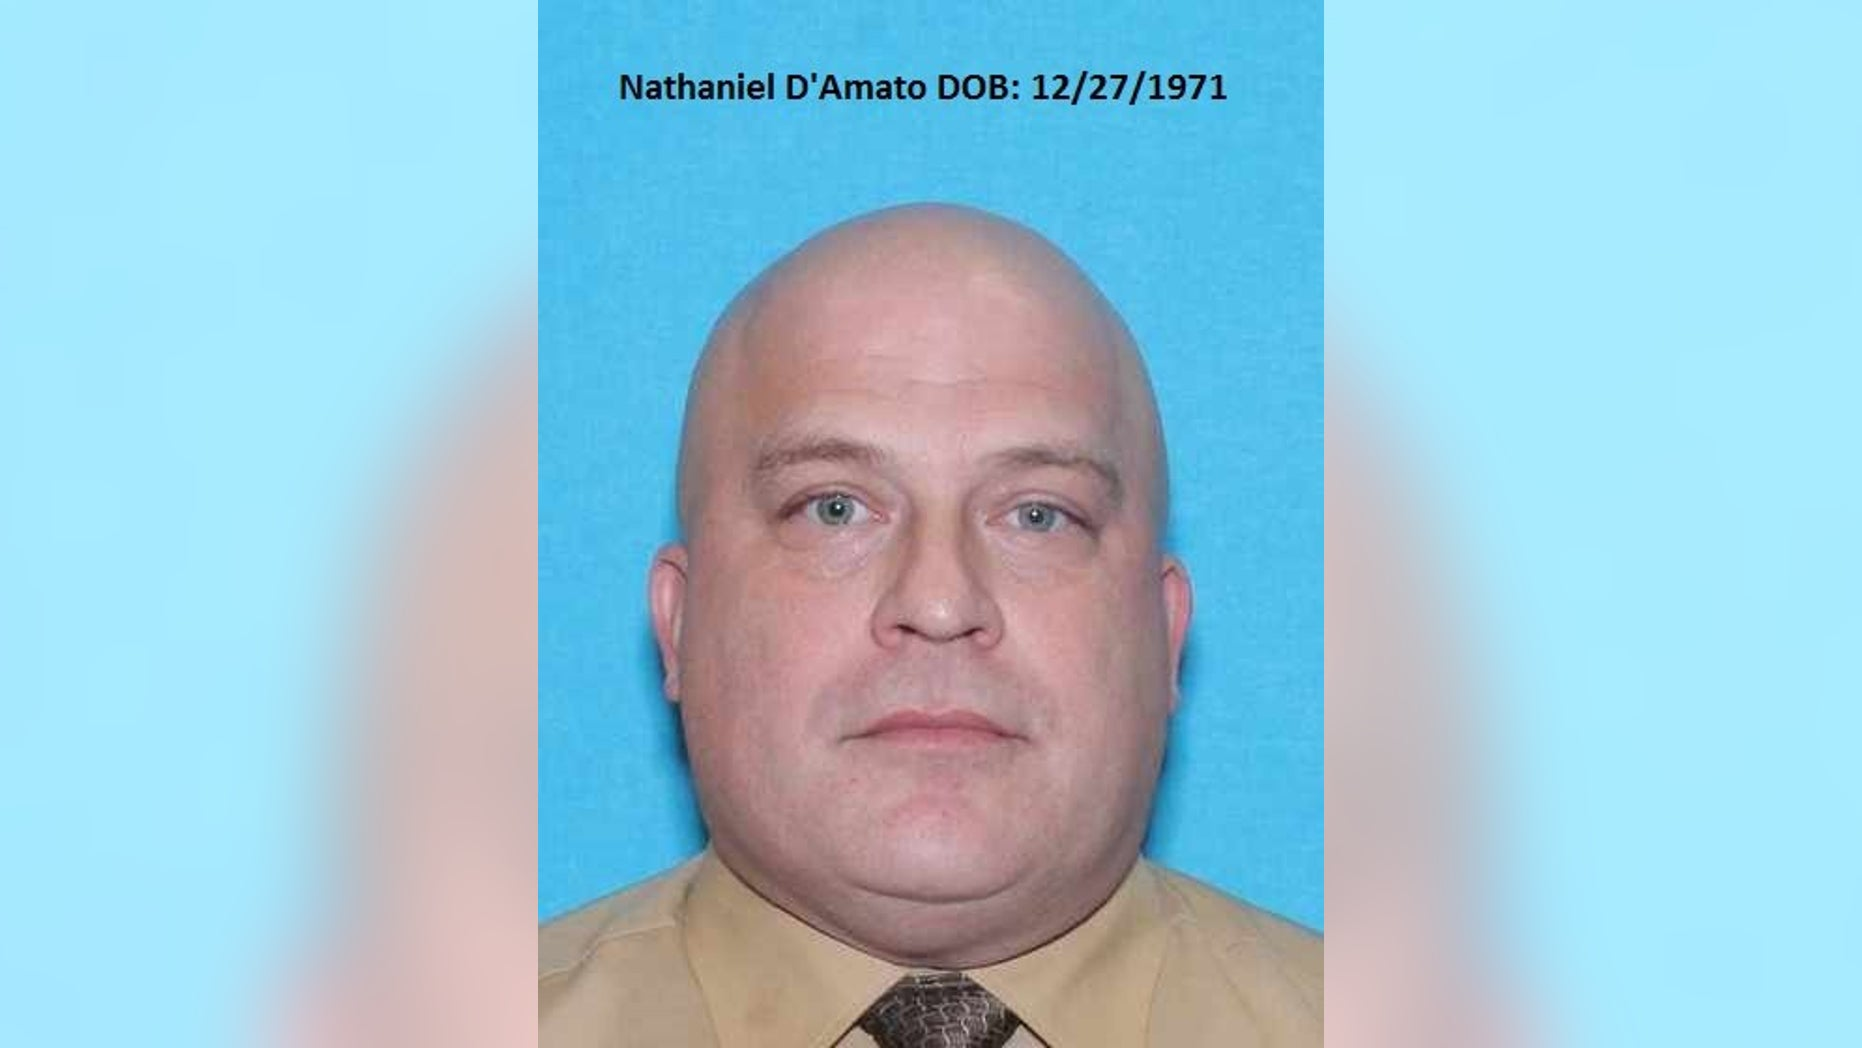 Nathaniel Joseph D'Amoto was arrested after his current wife found out he was still married to multiple women.